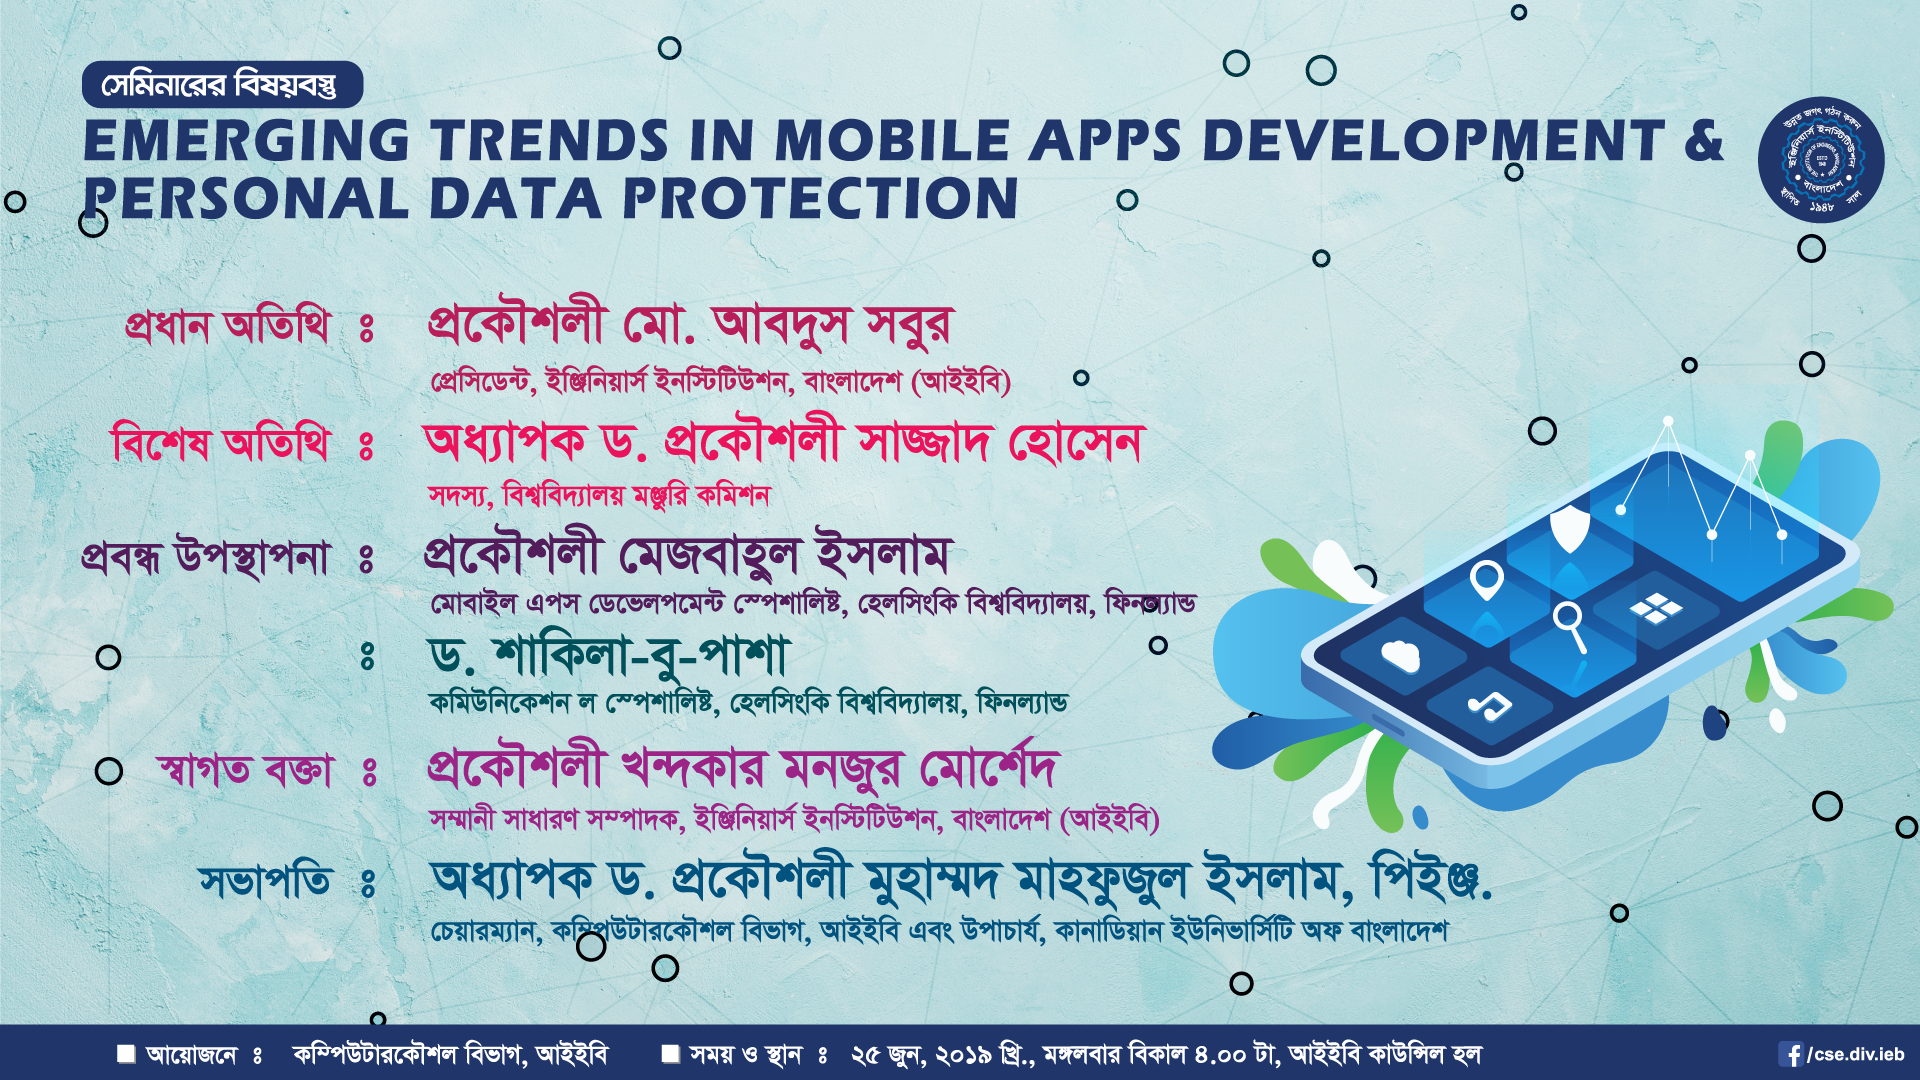 Seminar on: Emerging Trends in Mobile Apps Development & Personal Data Protection.